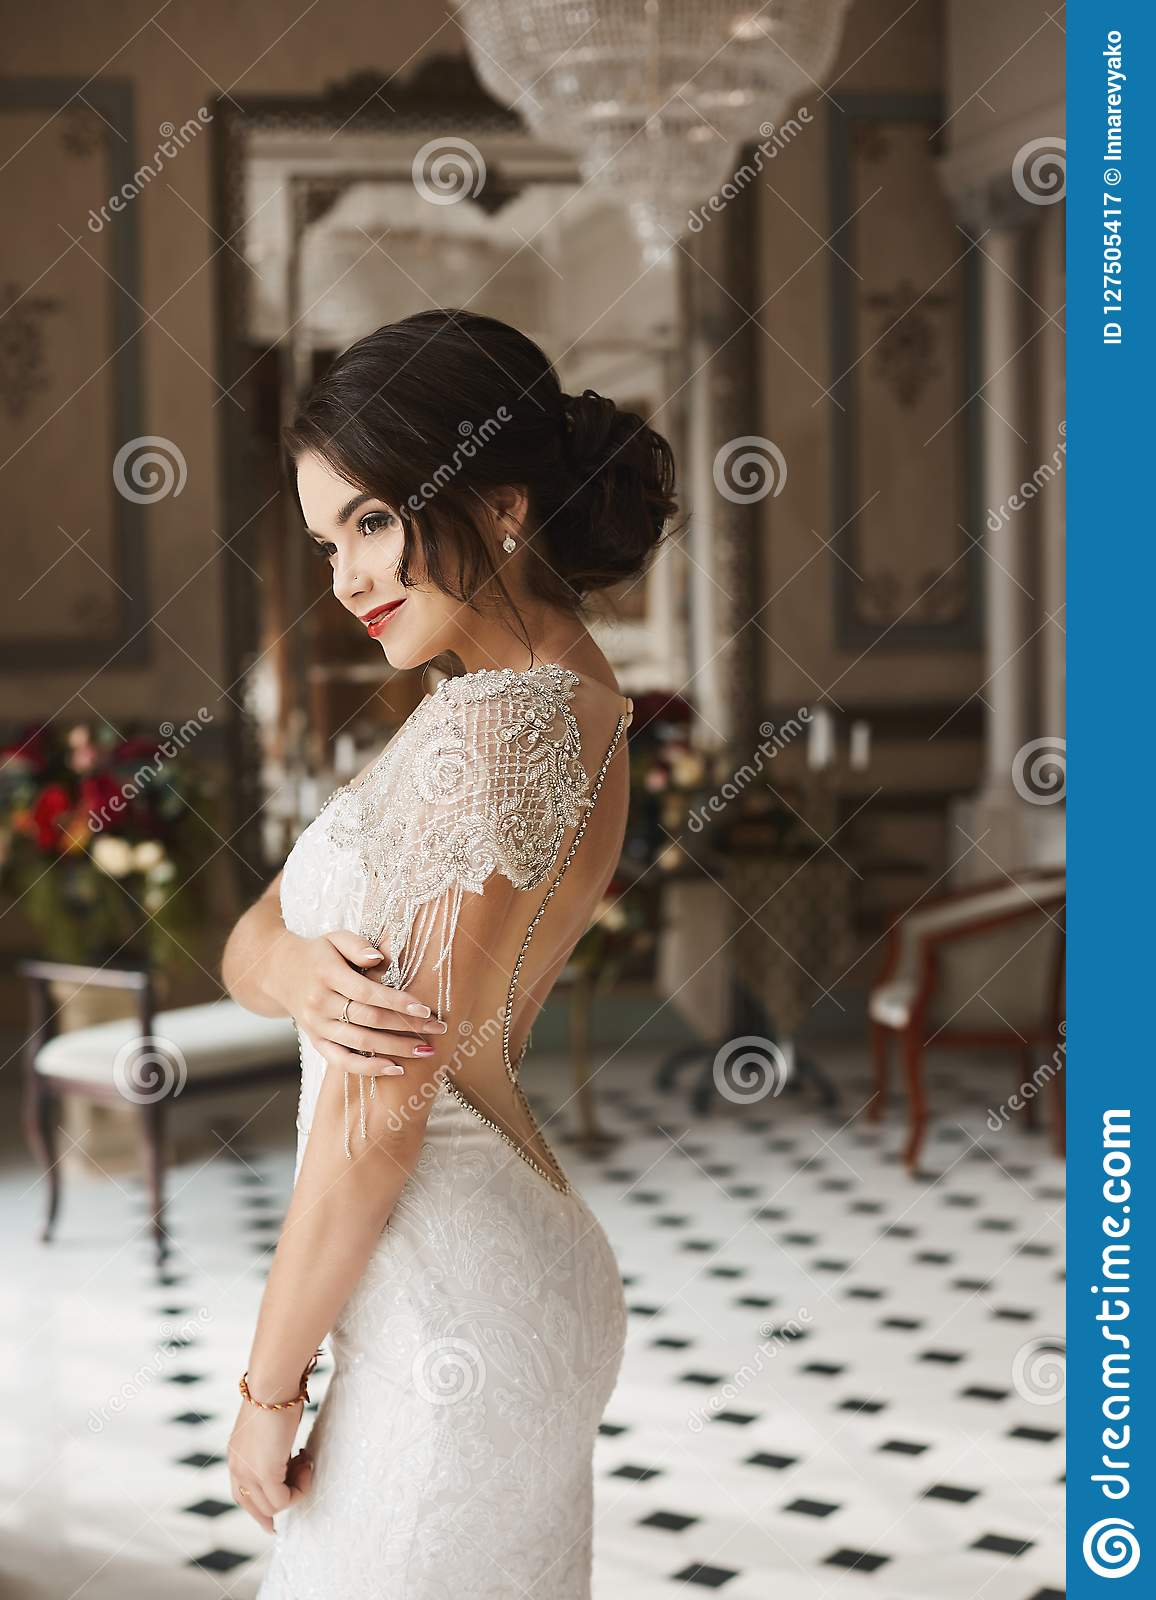 and sensual brunette model girl with bright make-up and fashionable hairstyle, in a stylish lace dress with naked